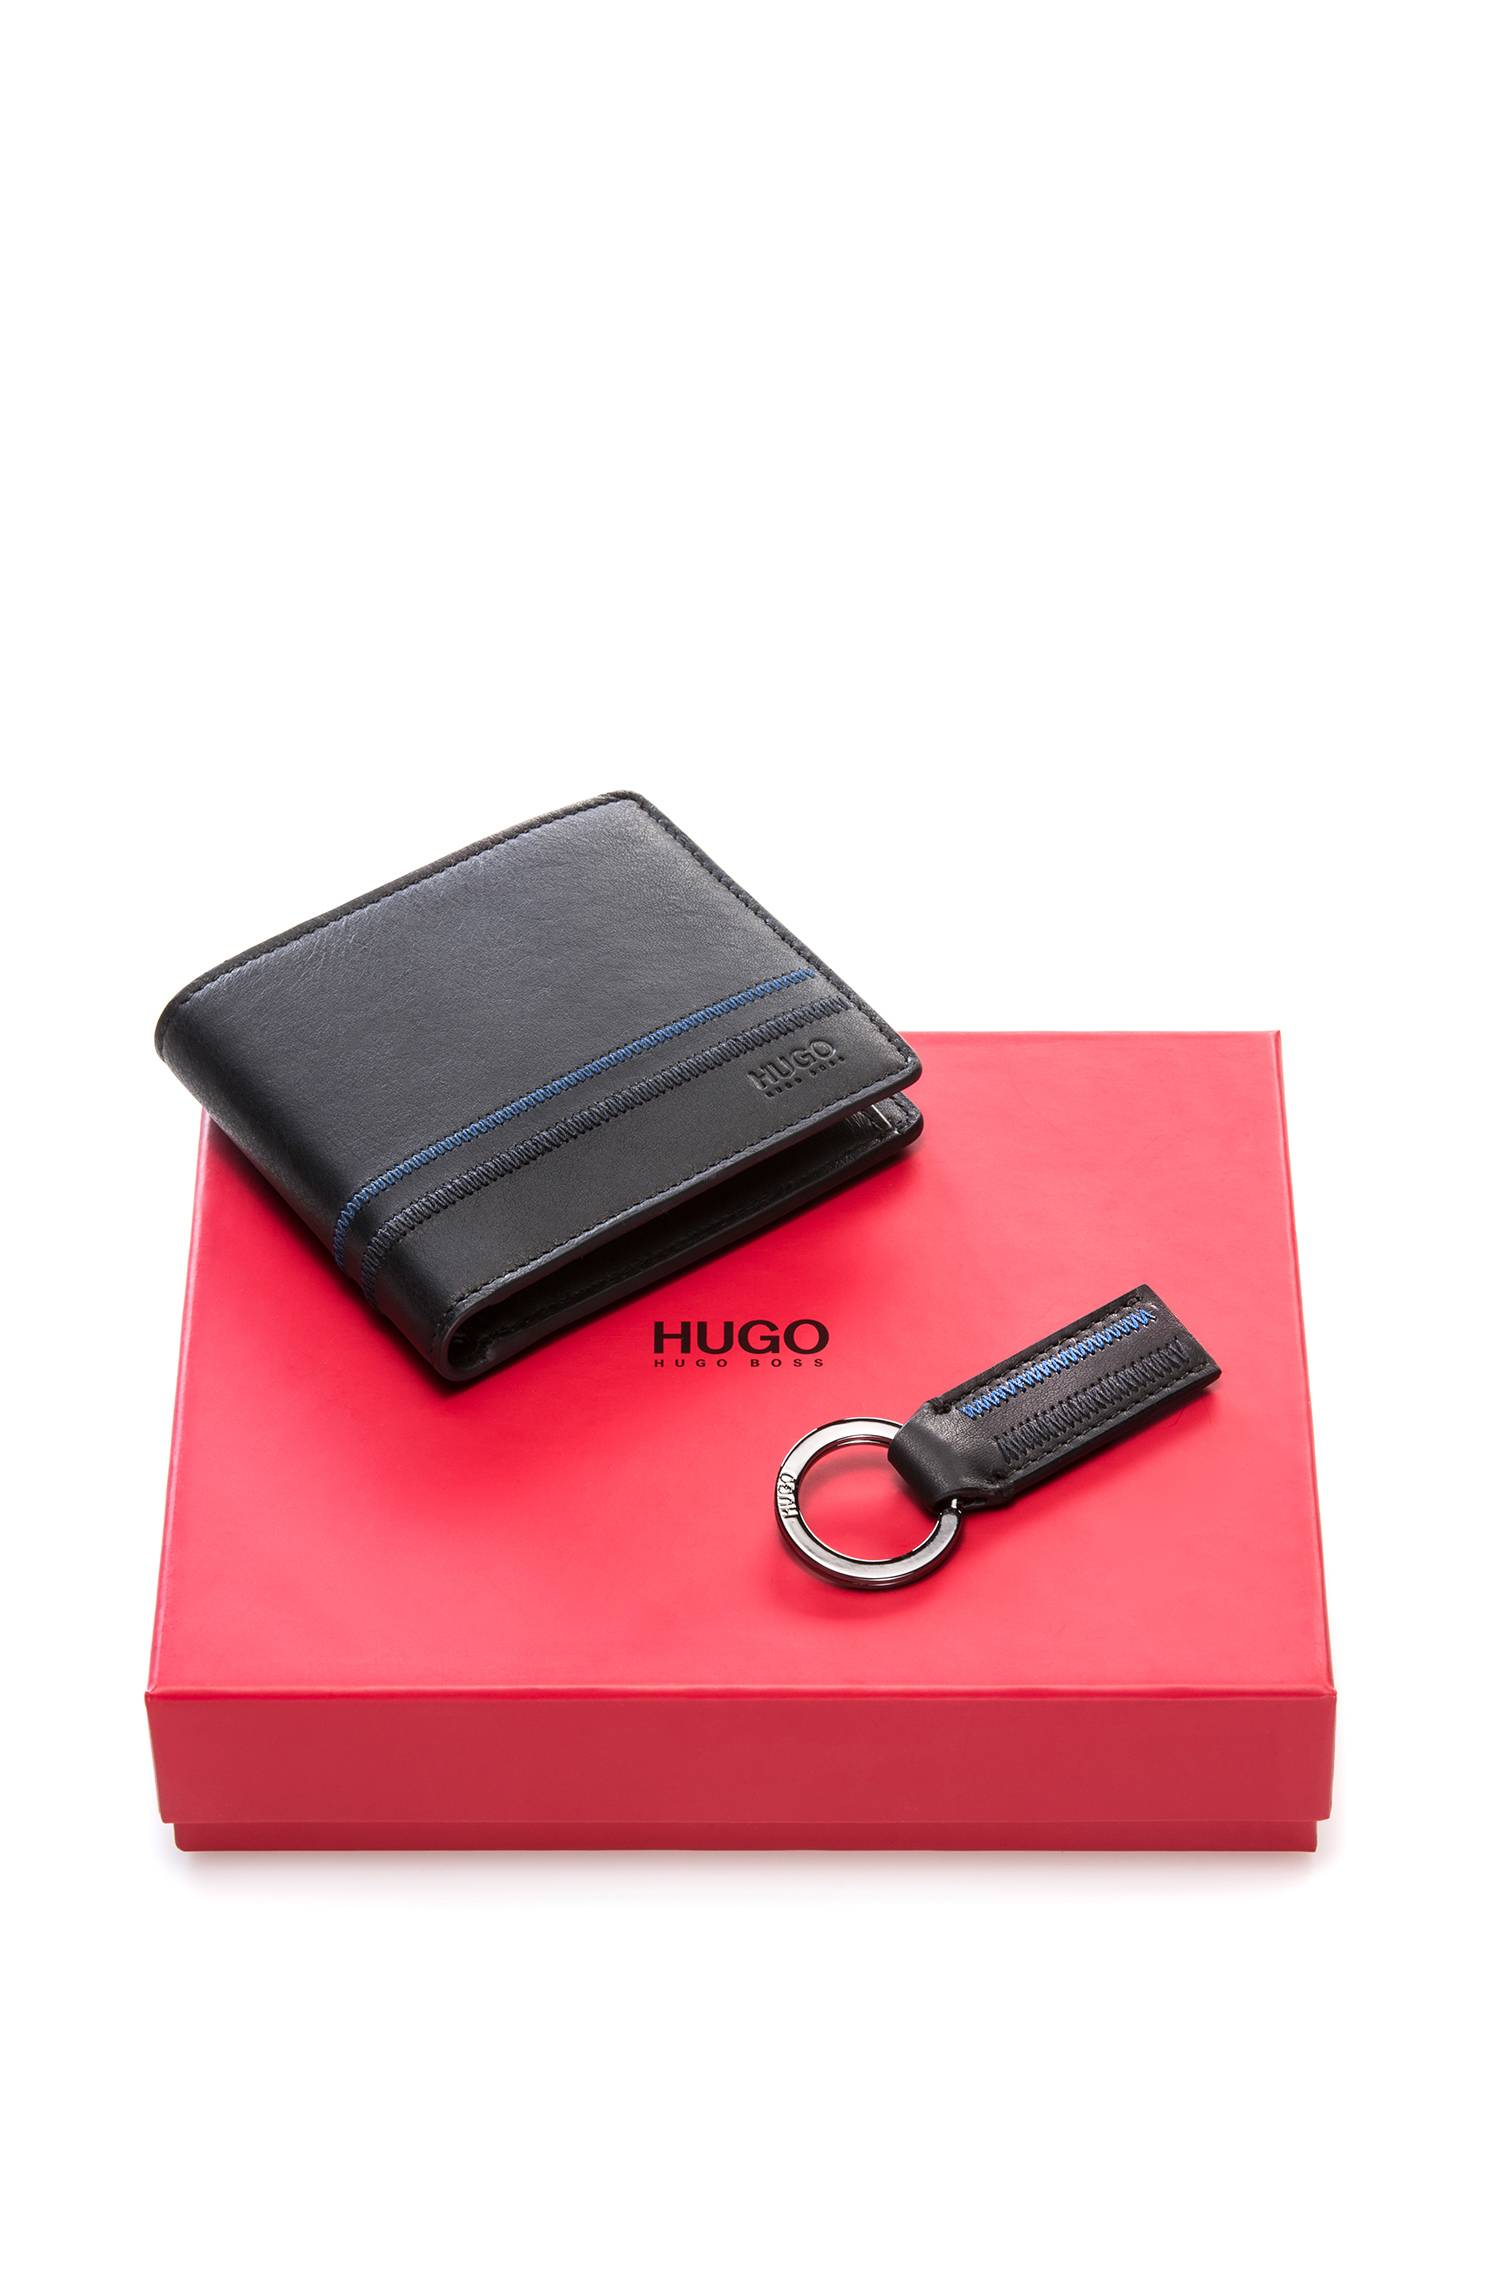 Leather wallet and key ring gift set